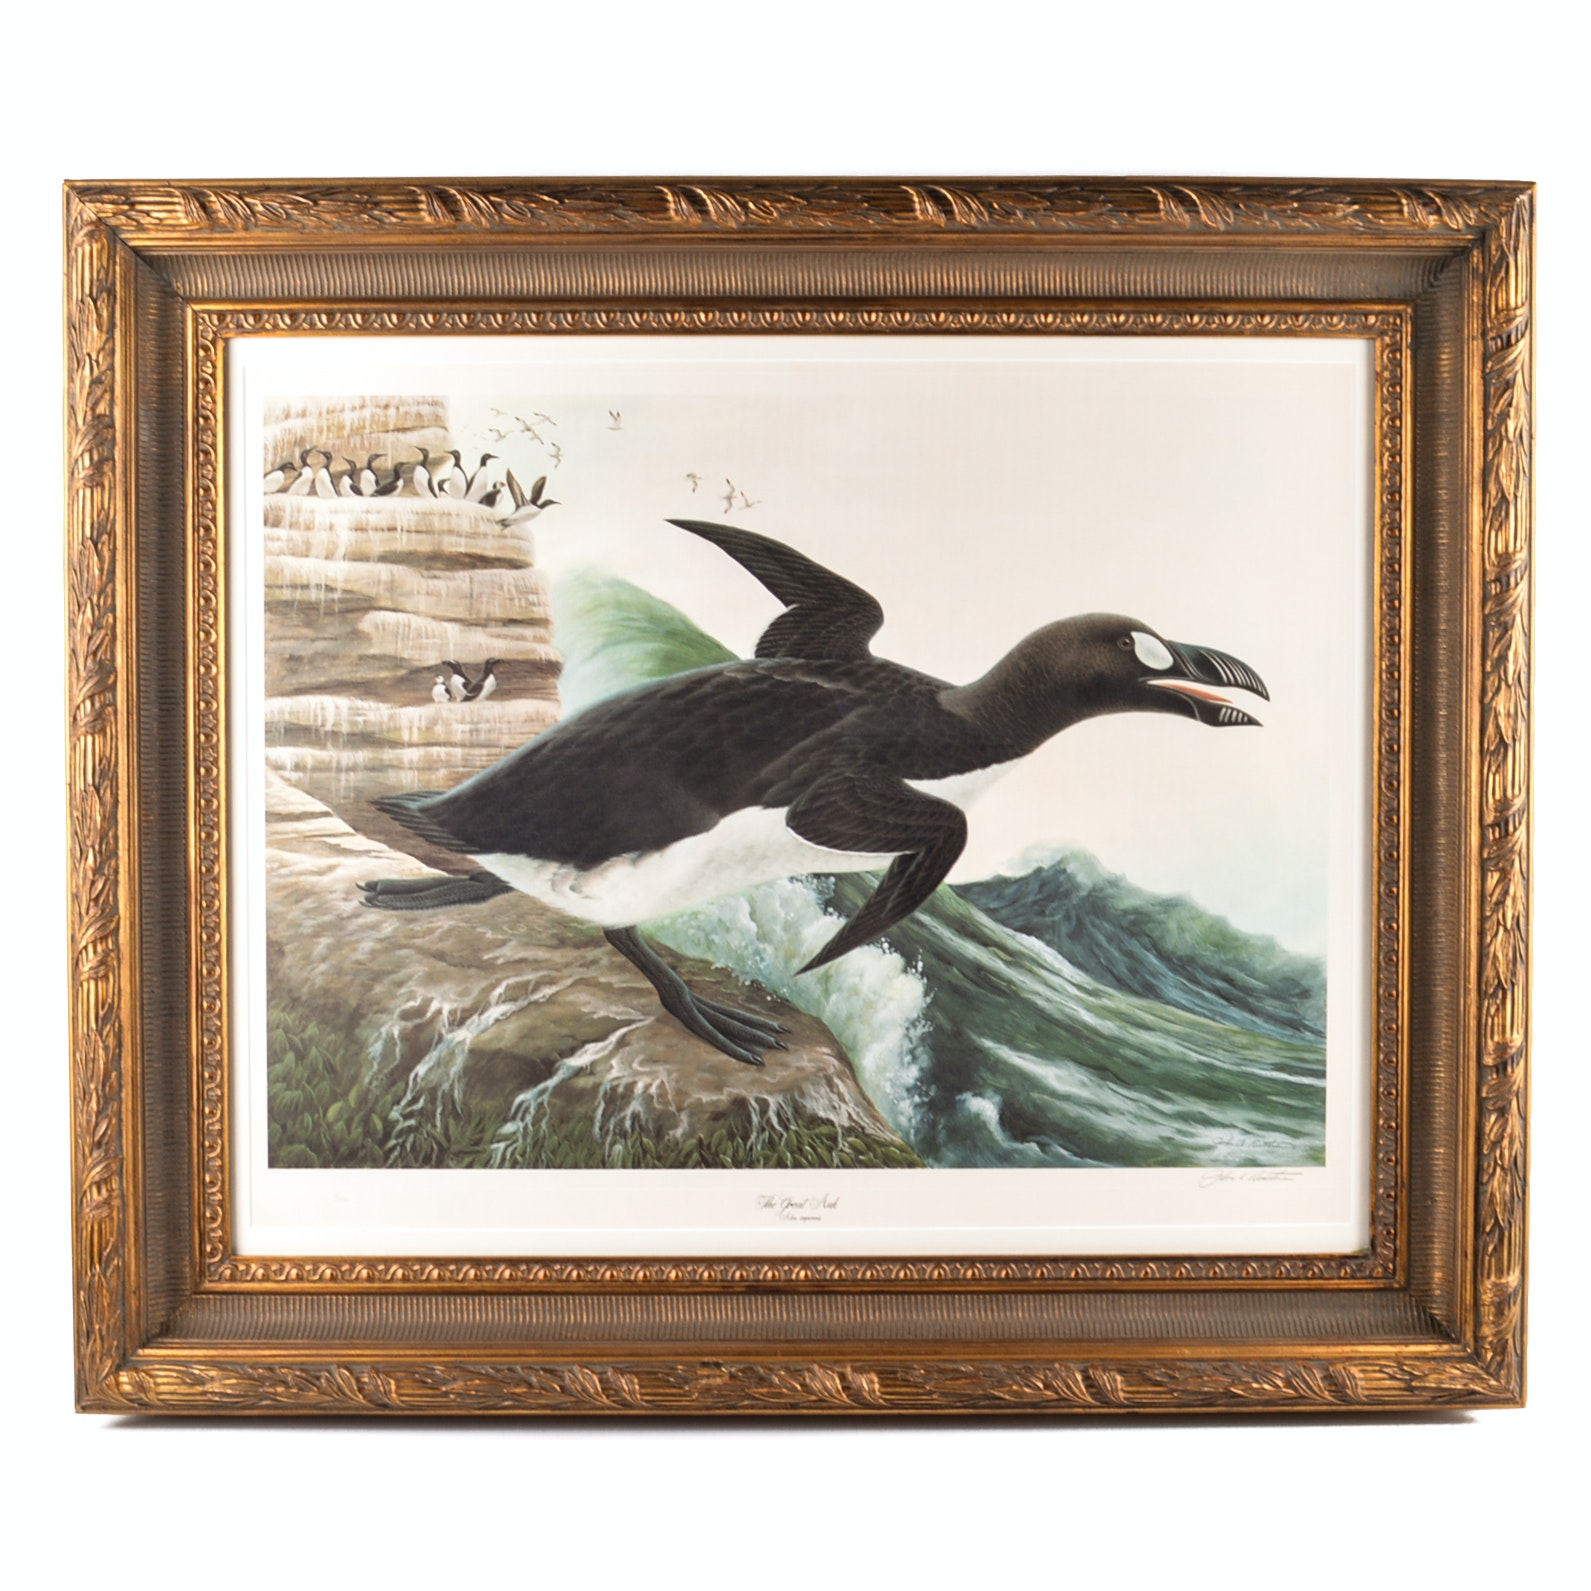 """John A. Ruthven Signed Limited Edition Offset Lithograph """"The Great Auk"""""""